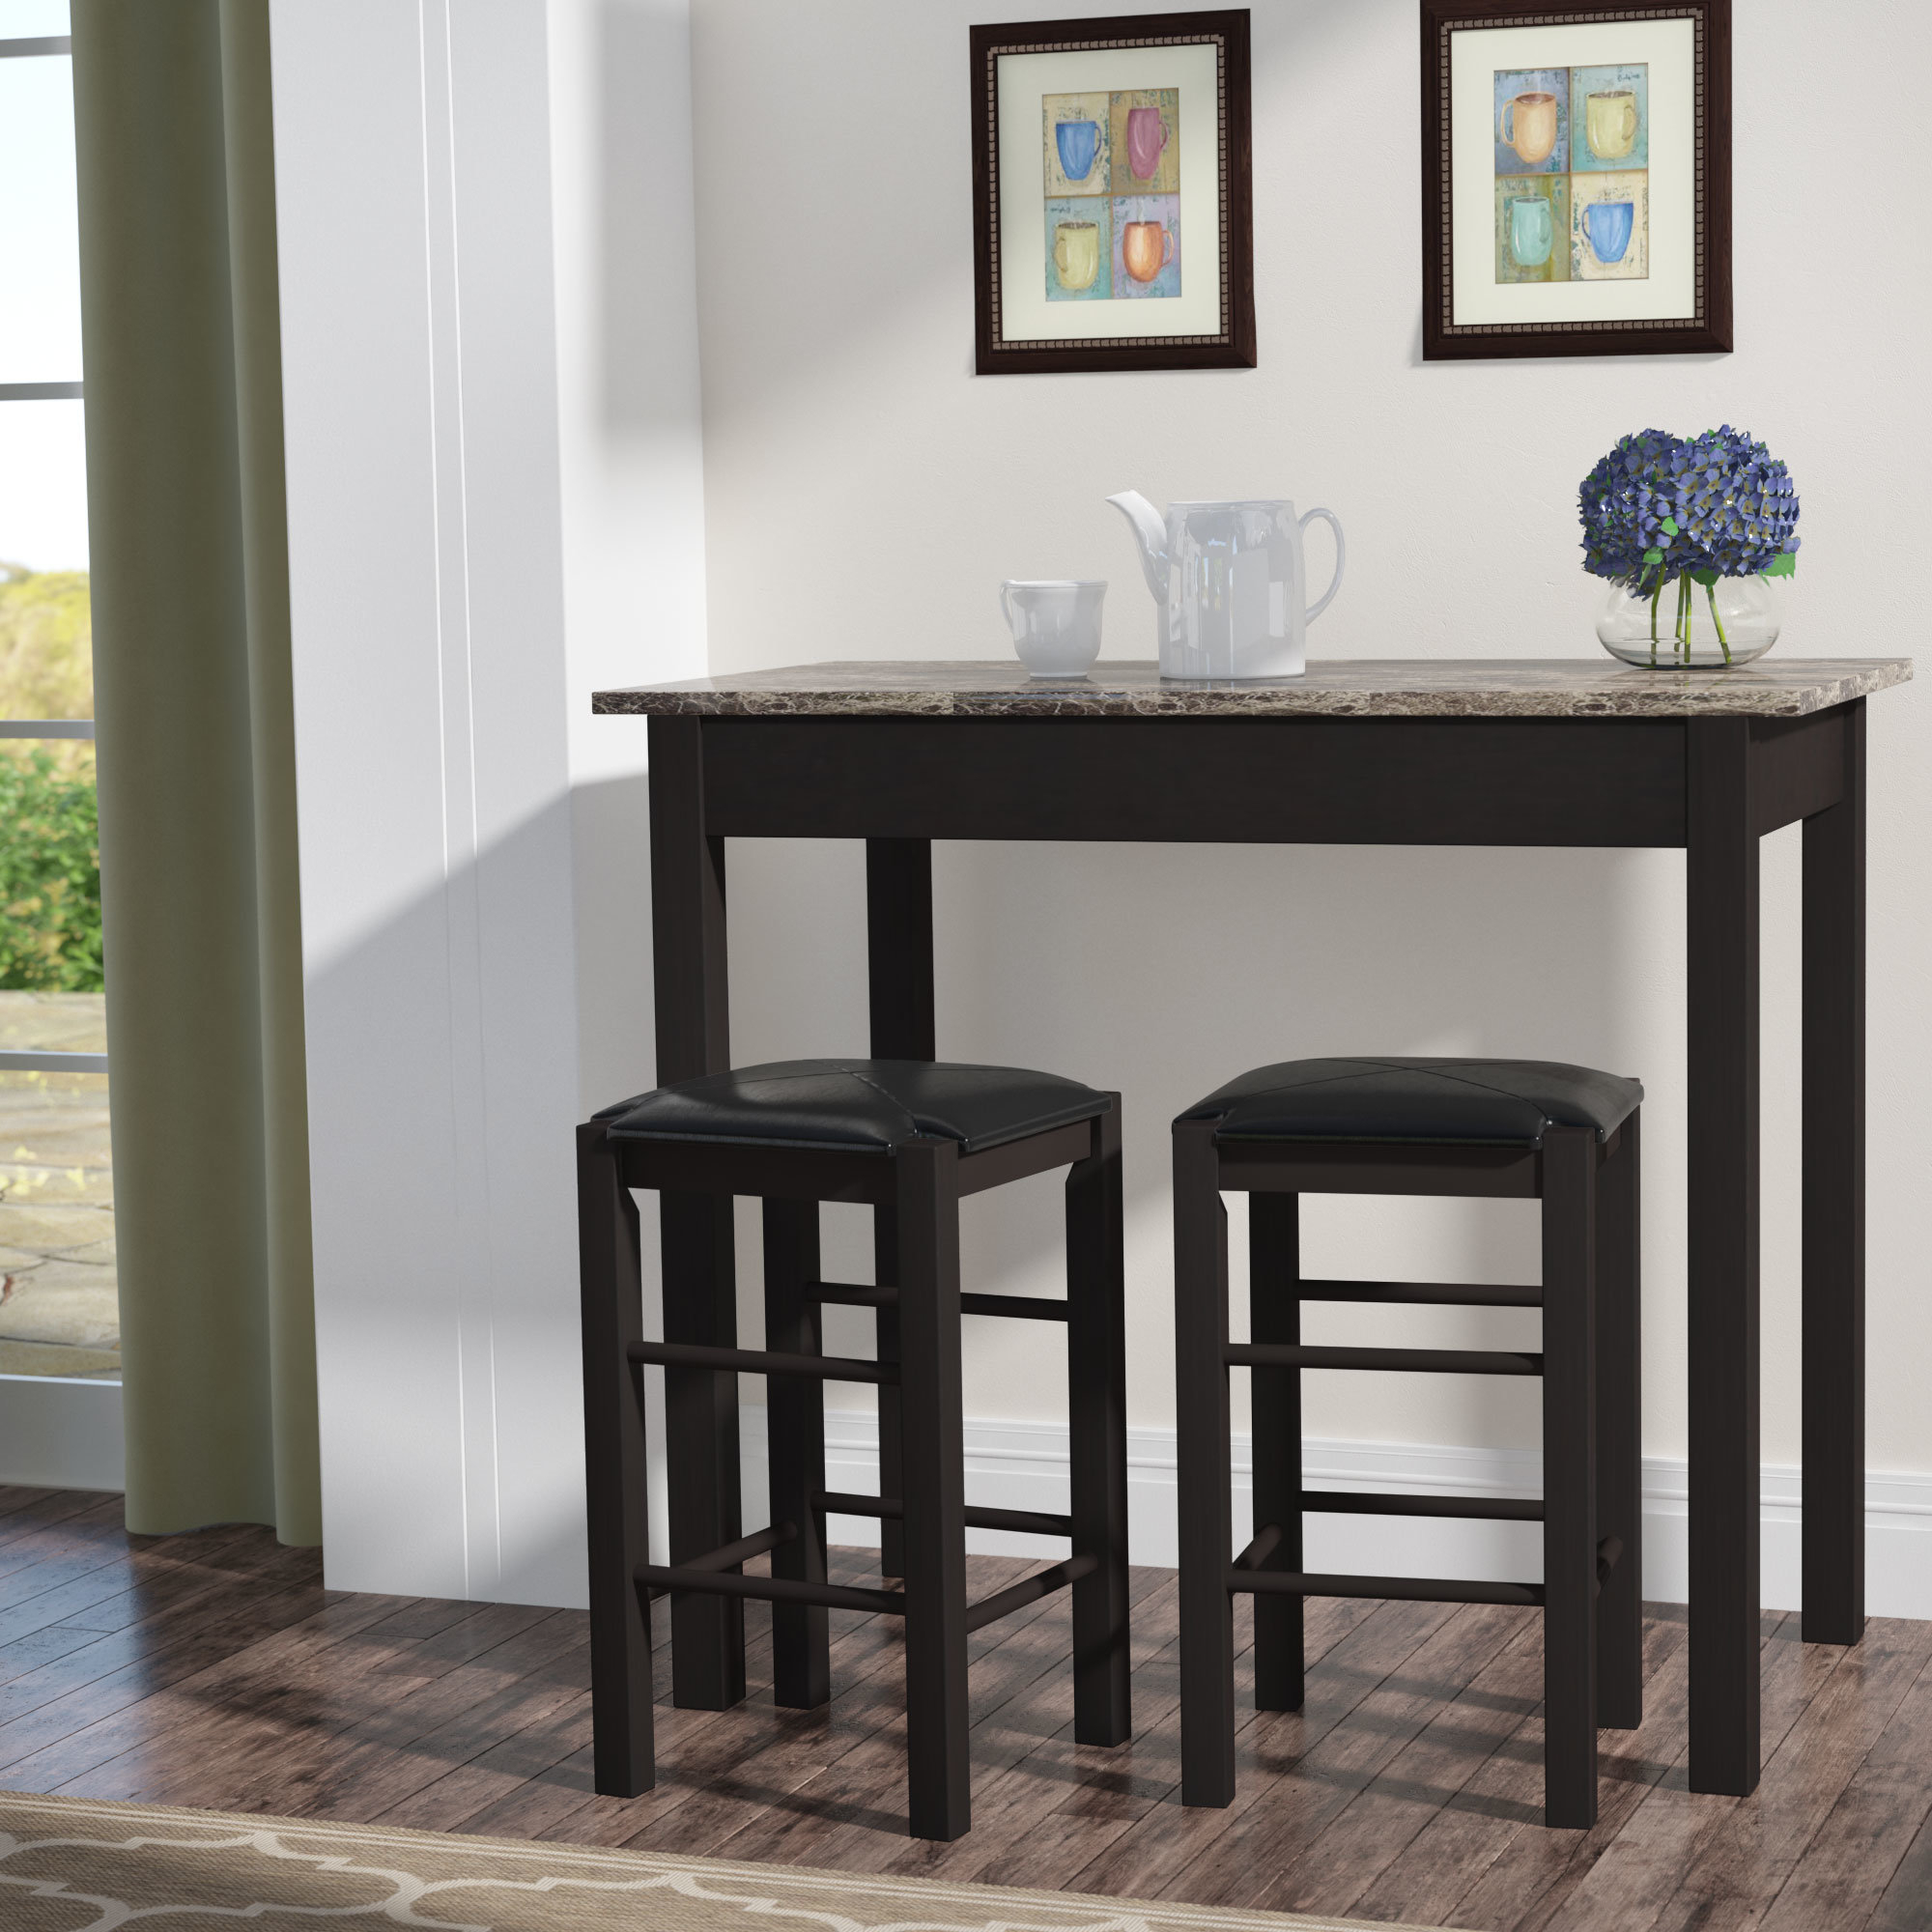 Miskell 3 Piece Dining Sets Pertaining To Most Popular Sheetz 3 Piece Counter Height Dining Set (View 13 of 20)